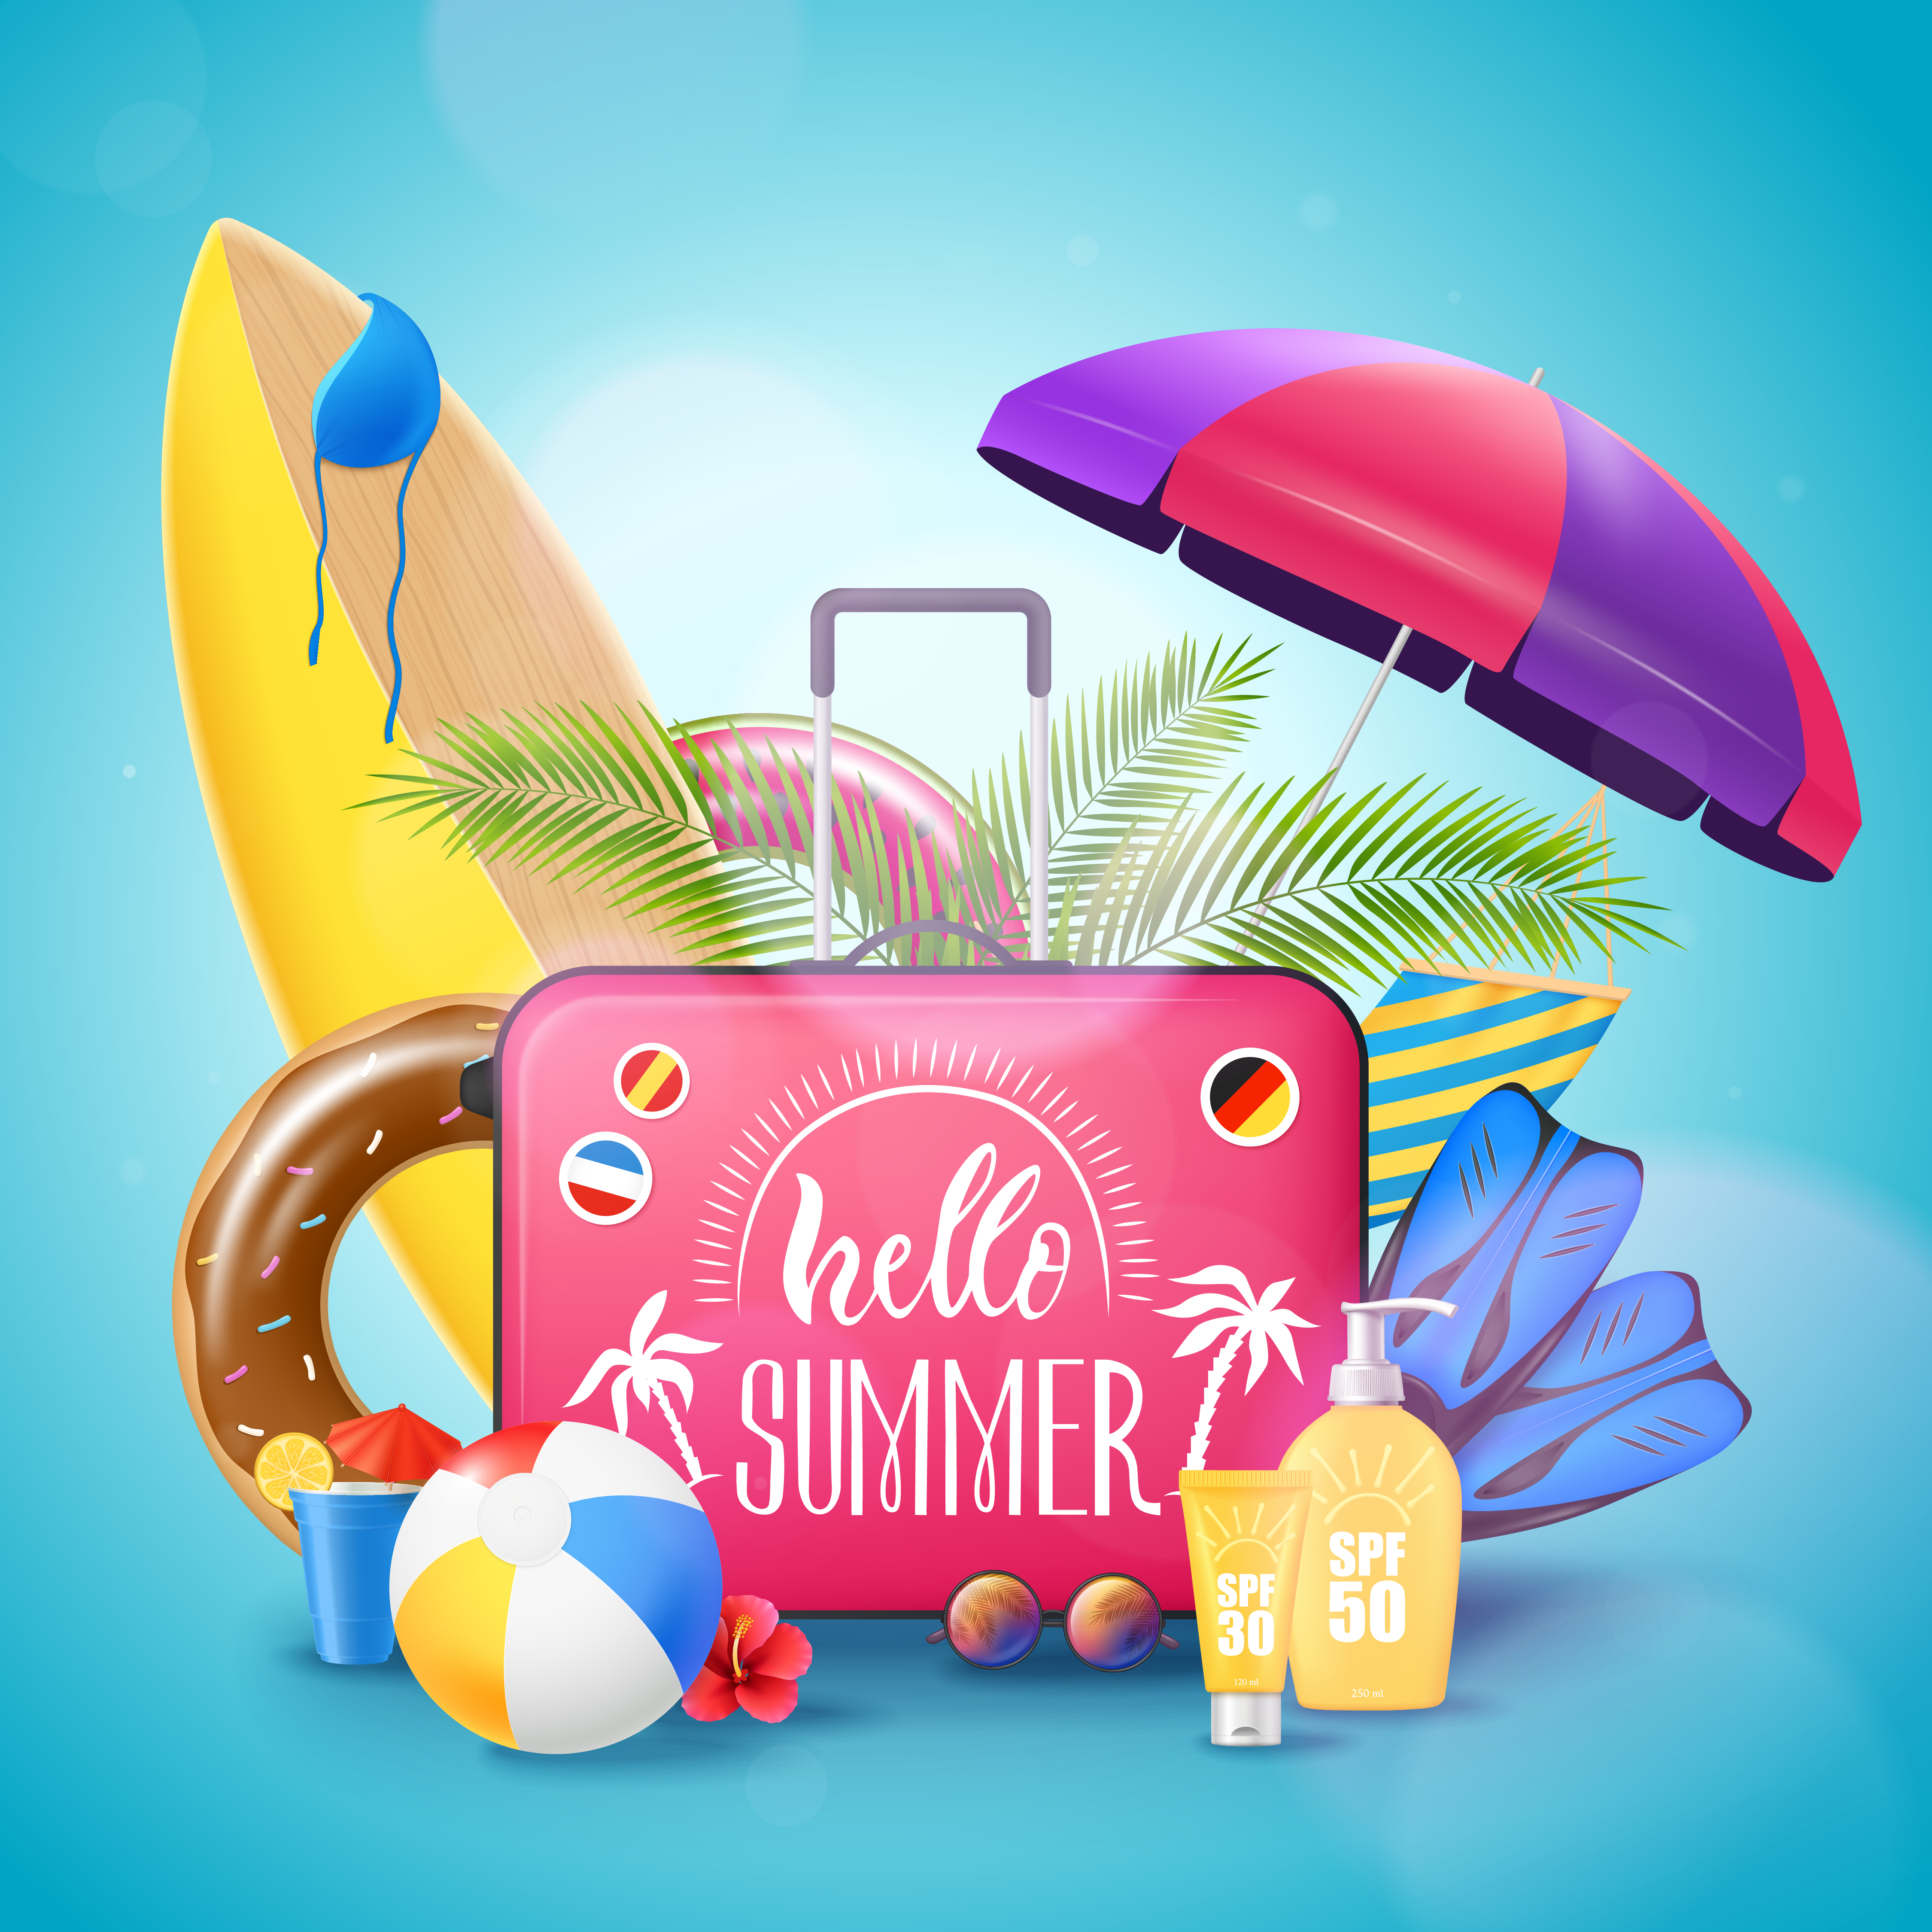 Summer Beach Vacation Background Poster - Download Free Vectors, Clipart Graphics & Vector Art